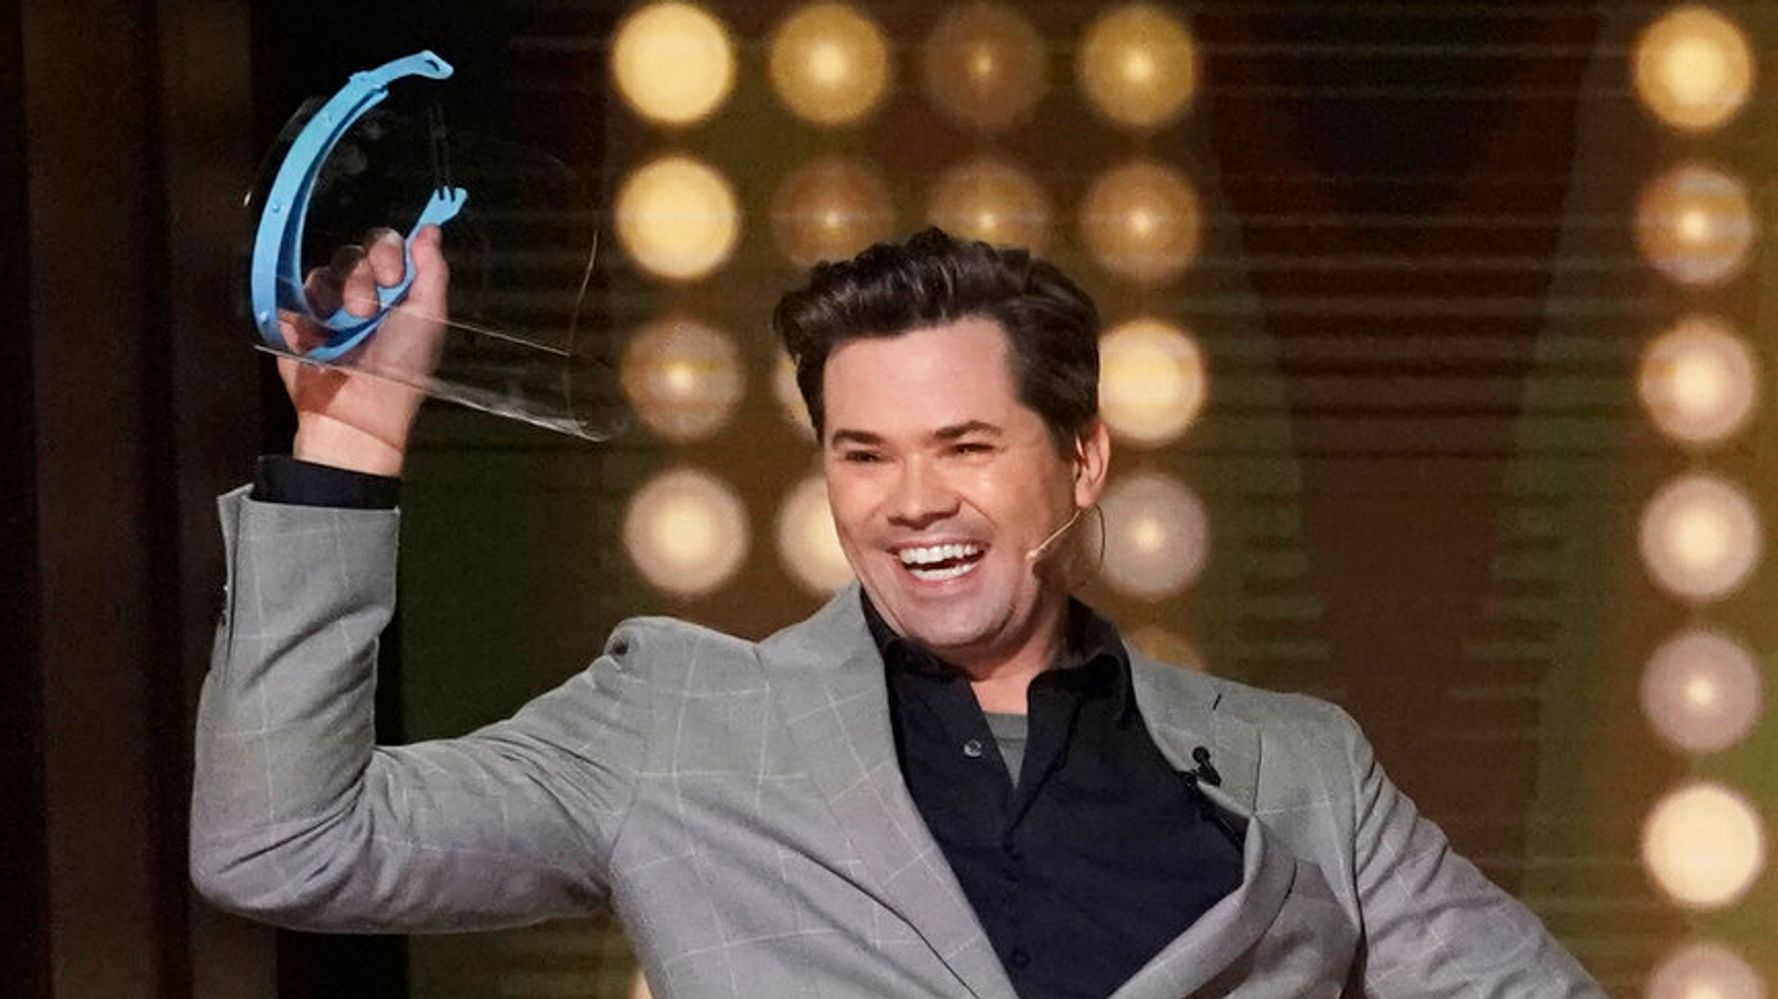 Andrew Rannells, Jimmy Fallon Recap Hellish Year In '2020: The Musical'